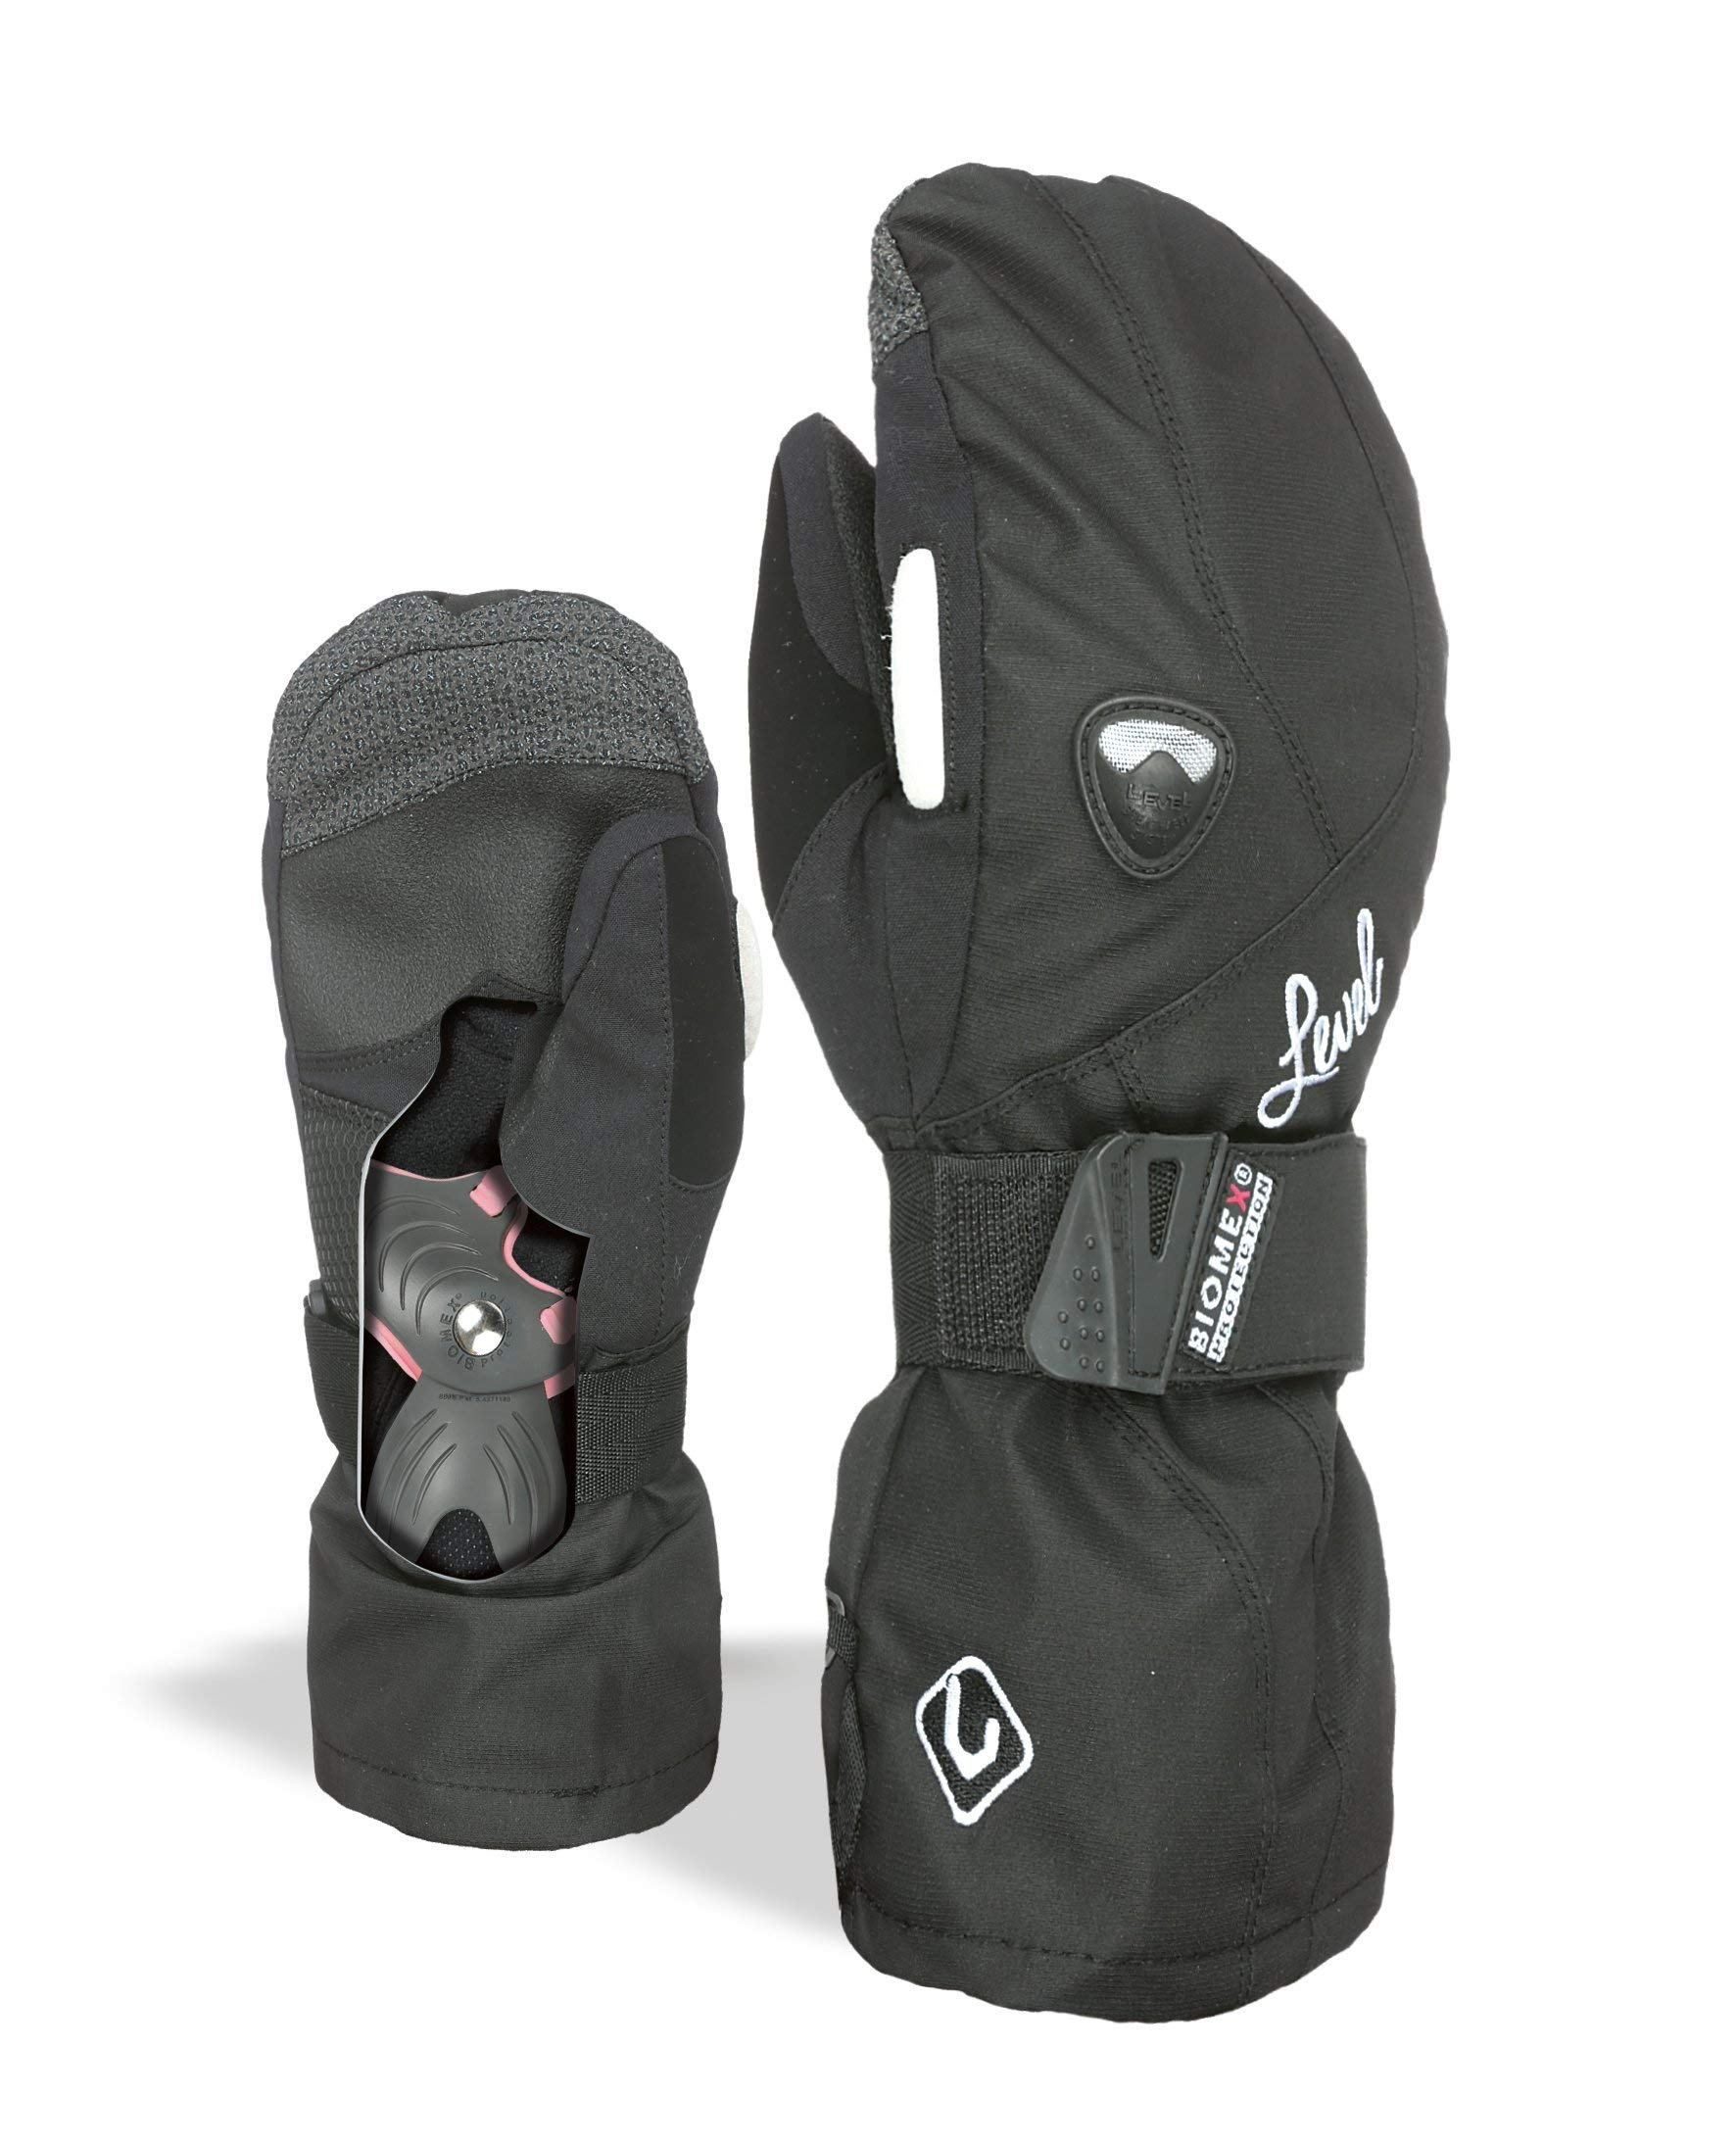 LEVEL Butterfly Women's Snowboard Mittens with Wrist Guards, Proven BioMex Design, Kevlar Palms, Removable Liner